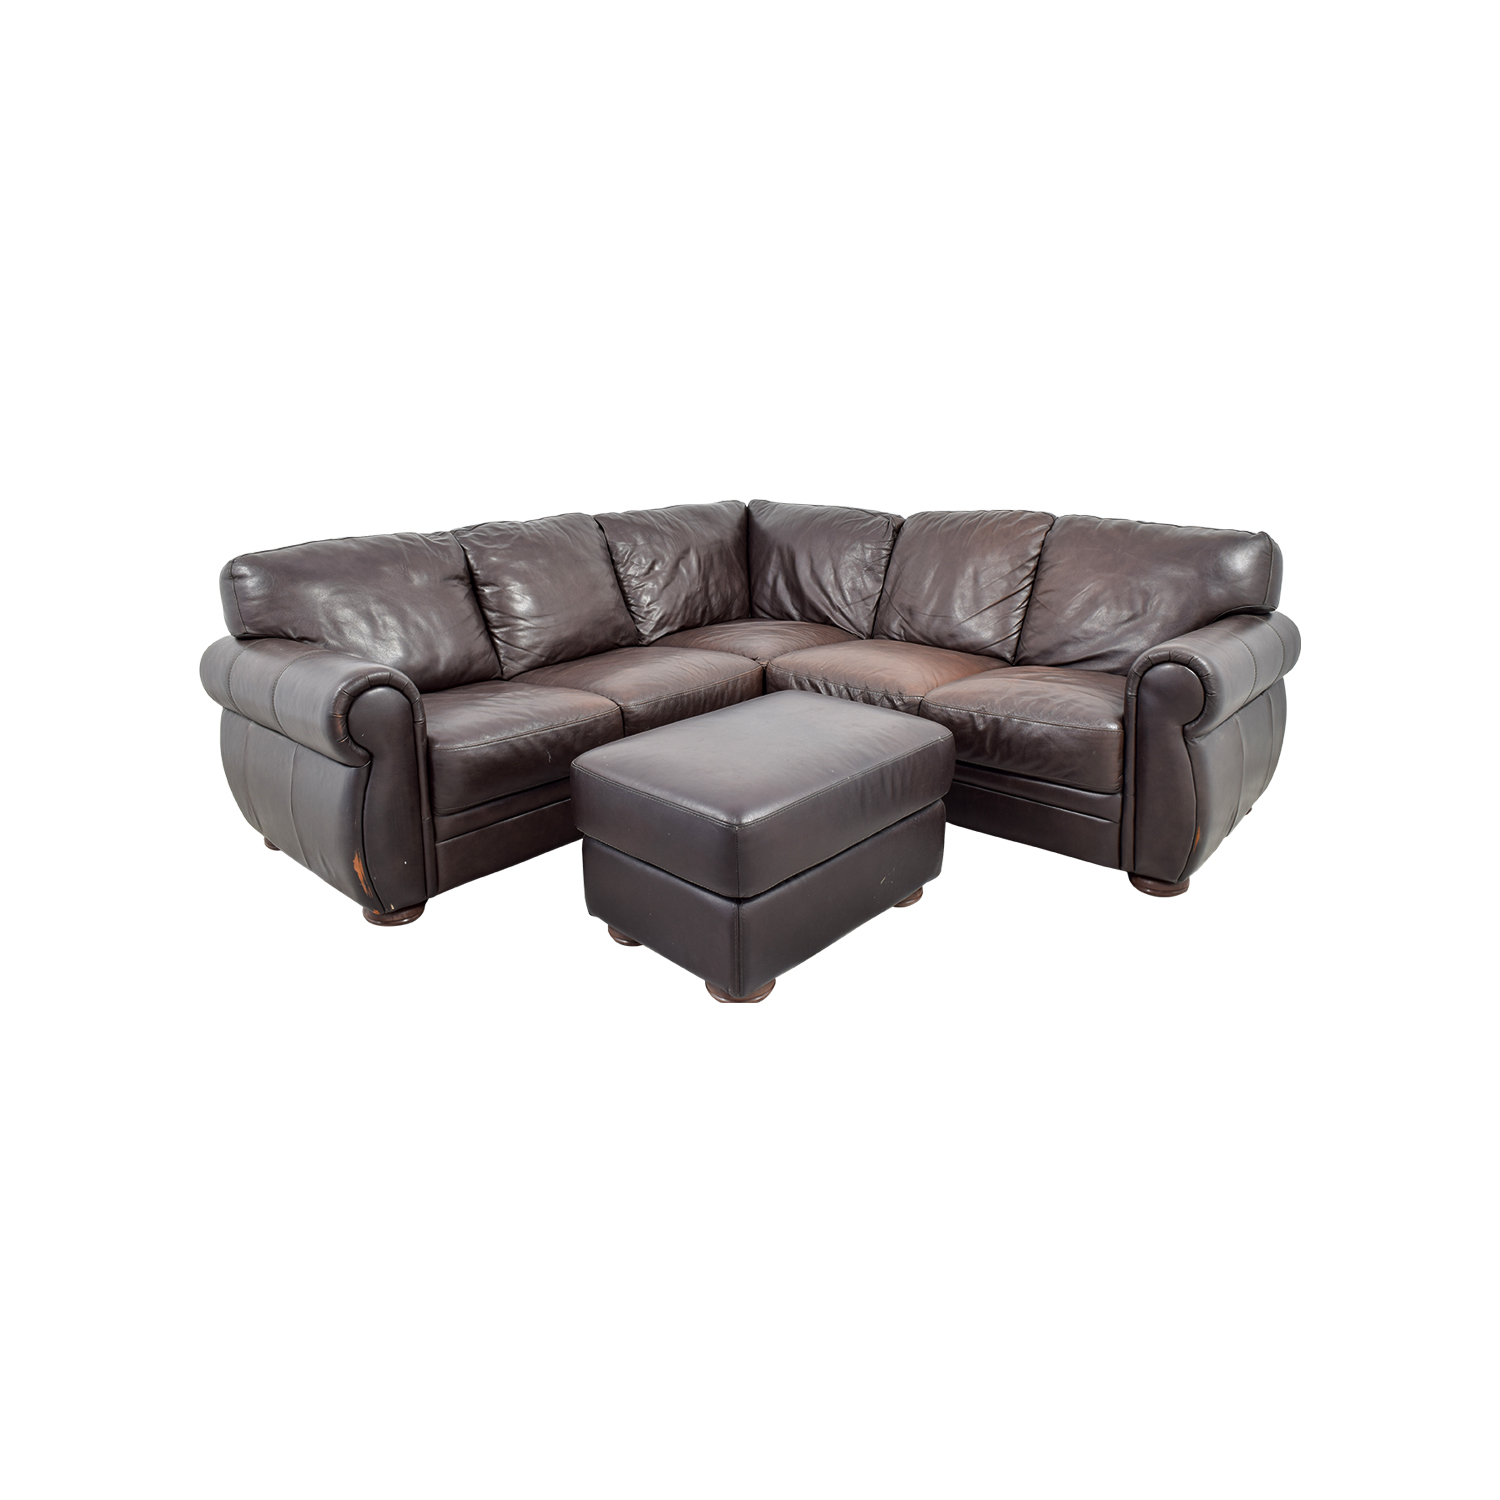 Chateau Dax Furniture Reviews: Chateau D'Ax Chateau Dax Brown Leather Sectional